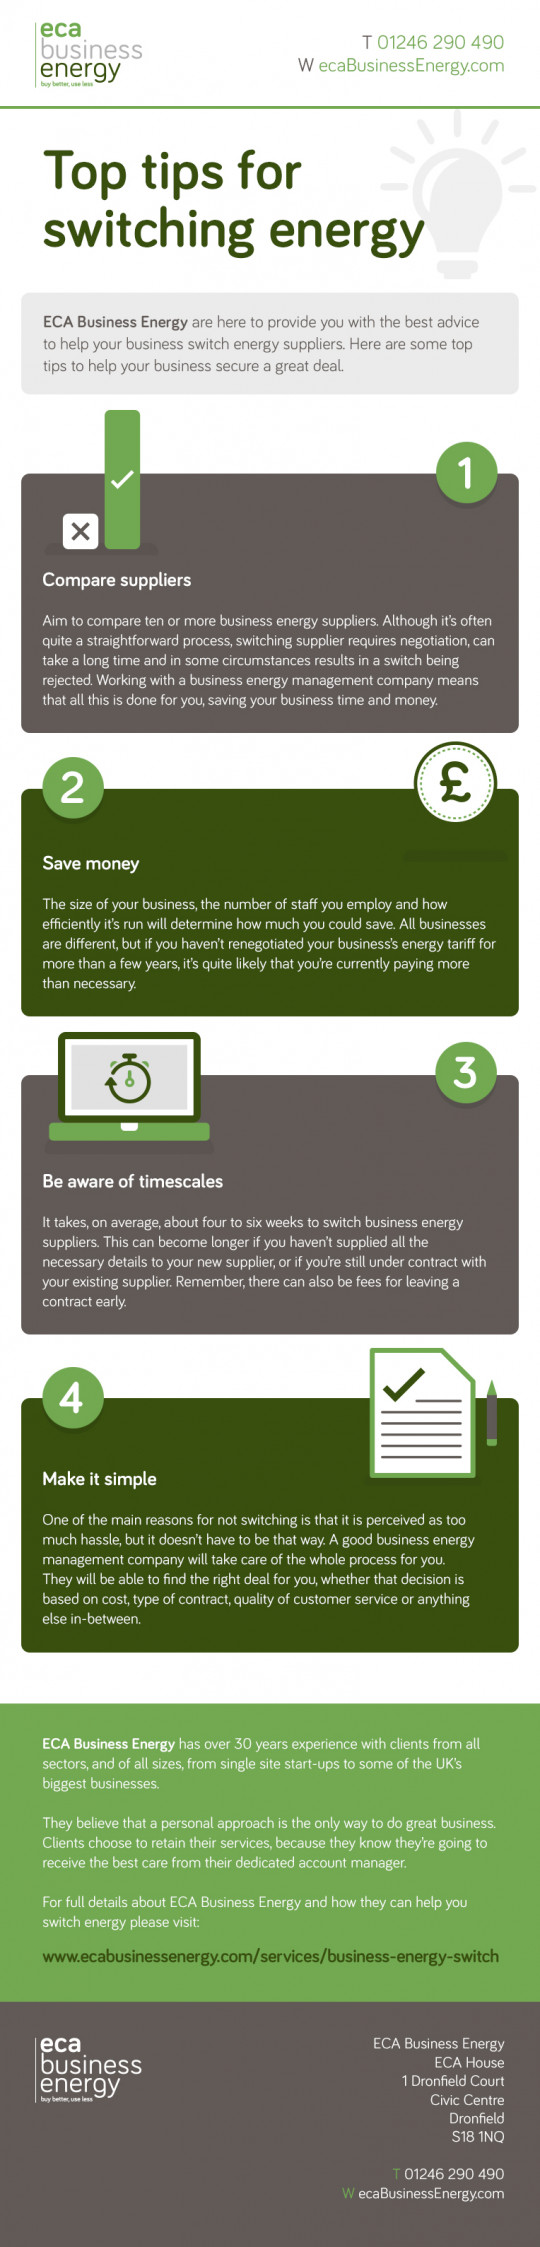 Top Tips for Switching Energy